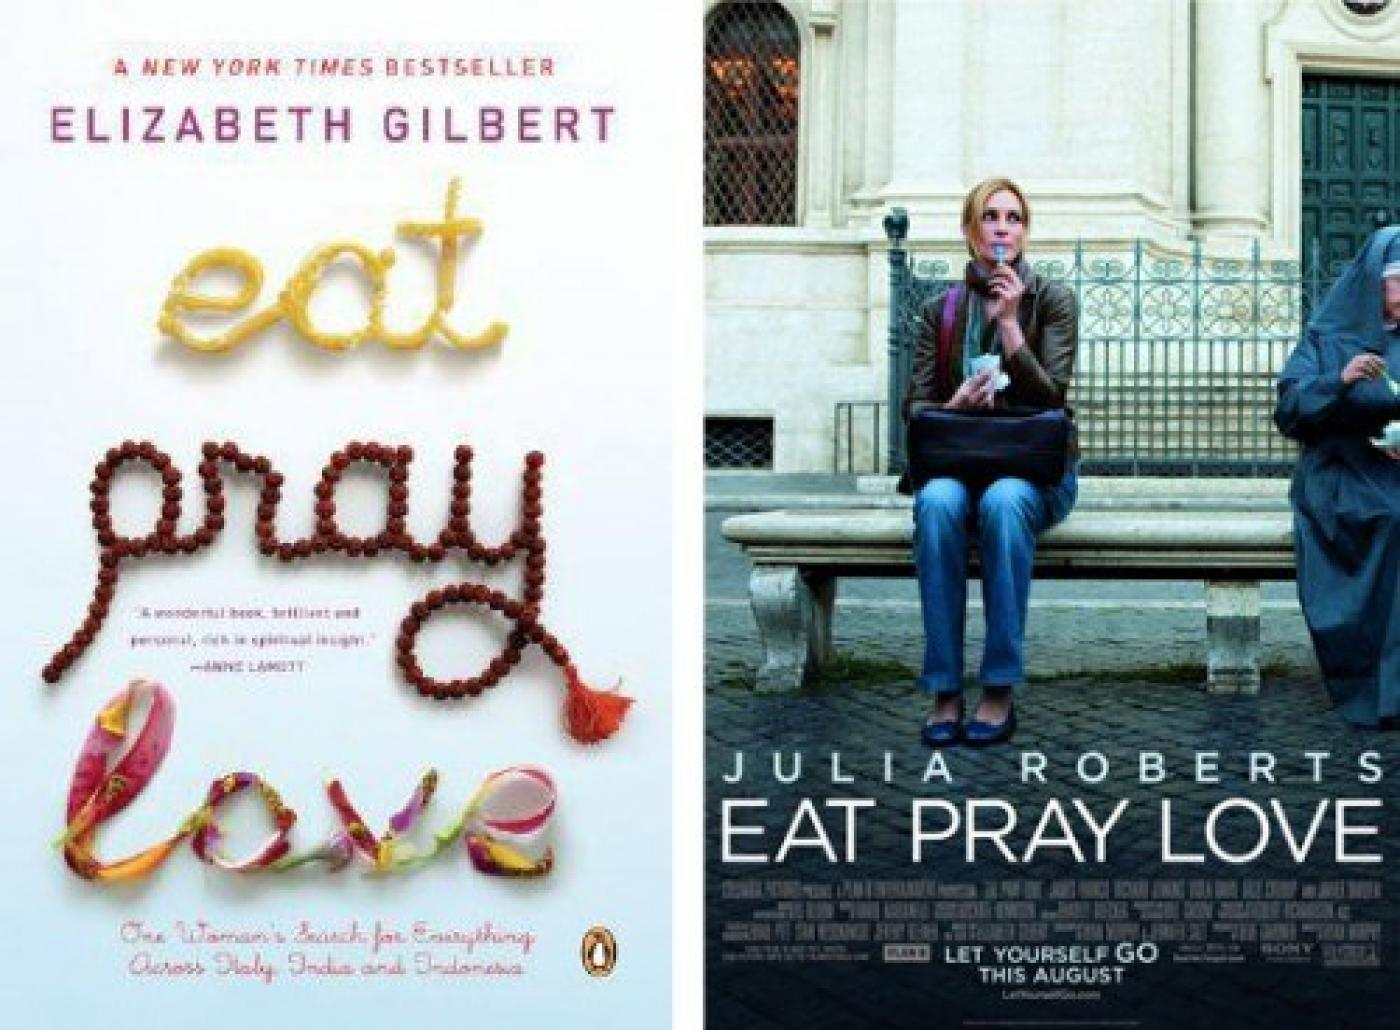 eat pray love essay topics